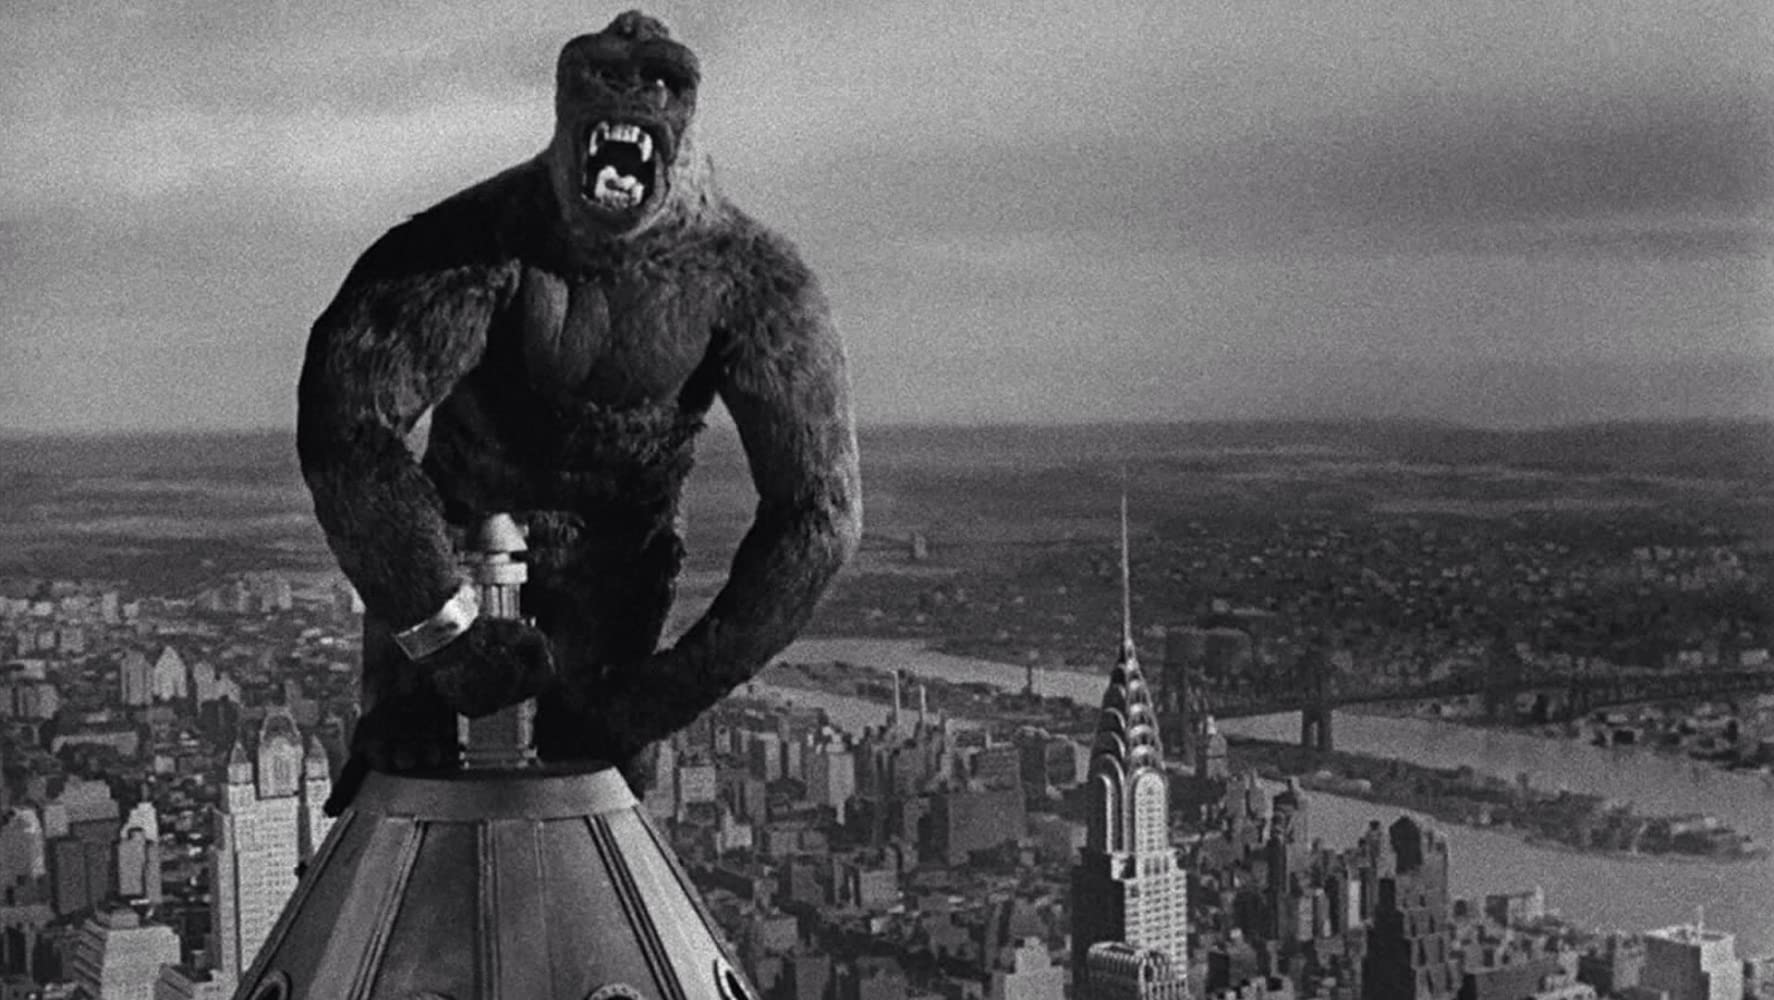 King Kong in King Kong 1933